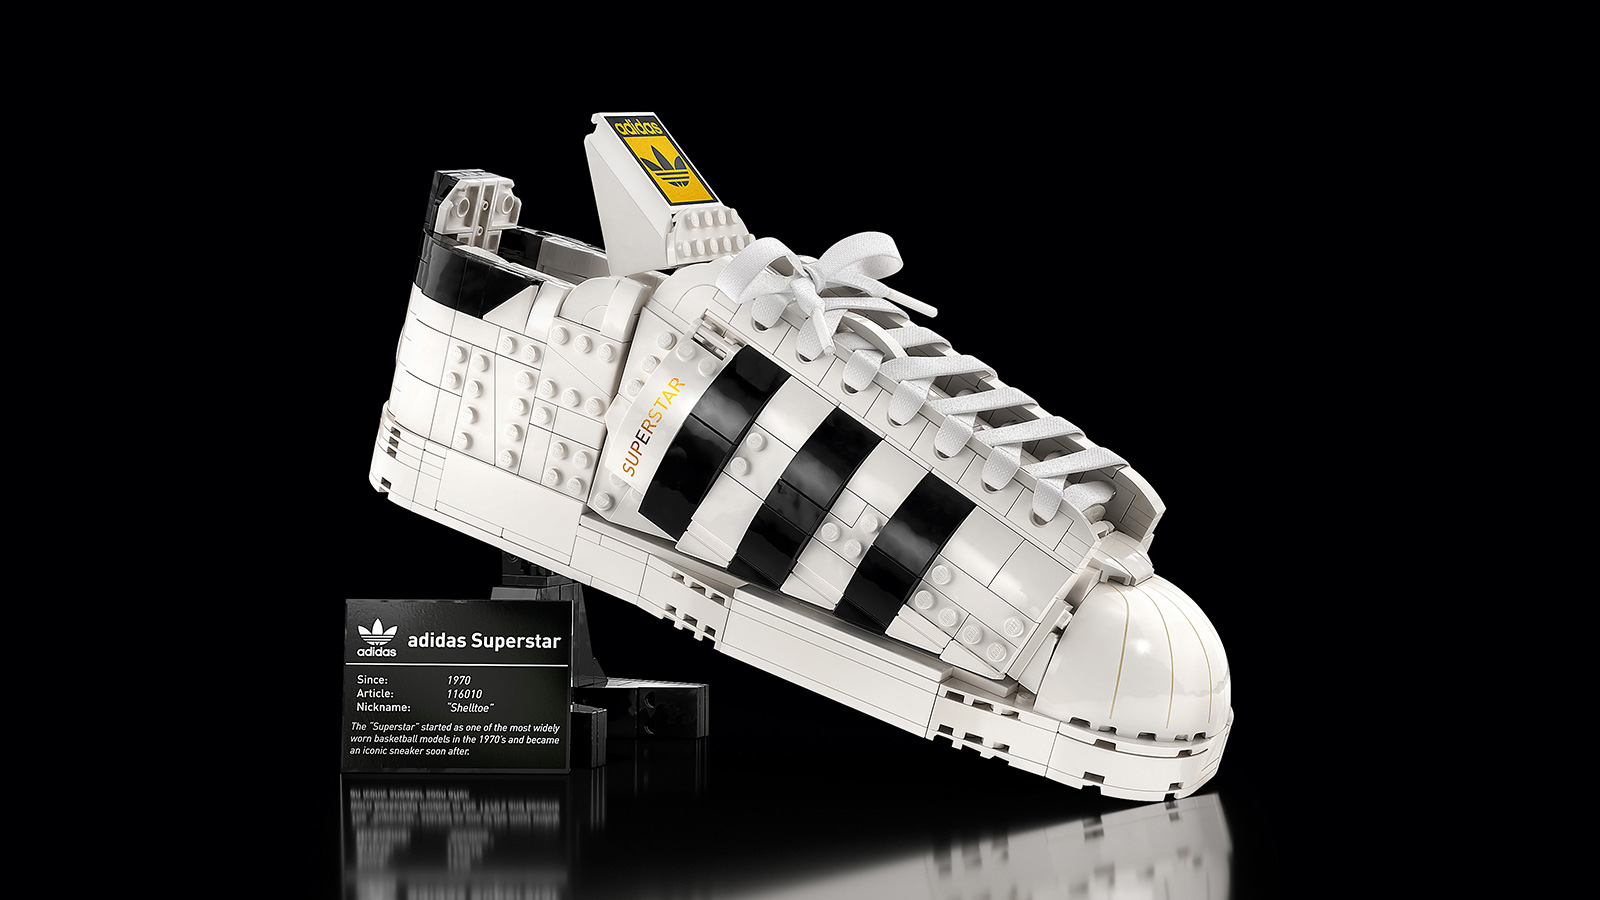 Lego has created an Adidas sneaker, complete with laces and a ...